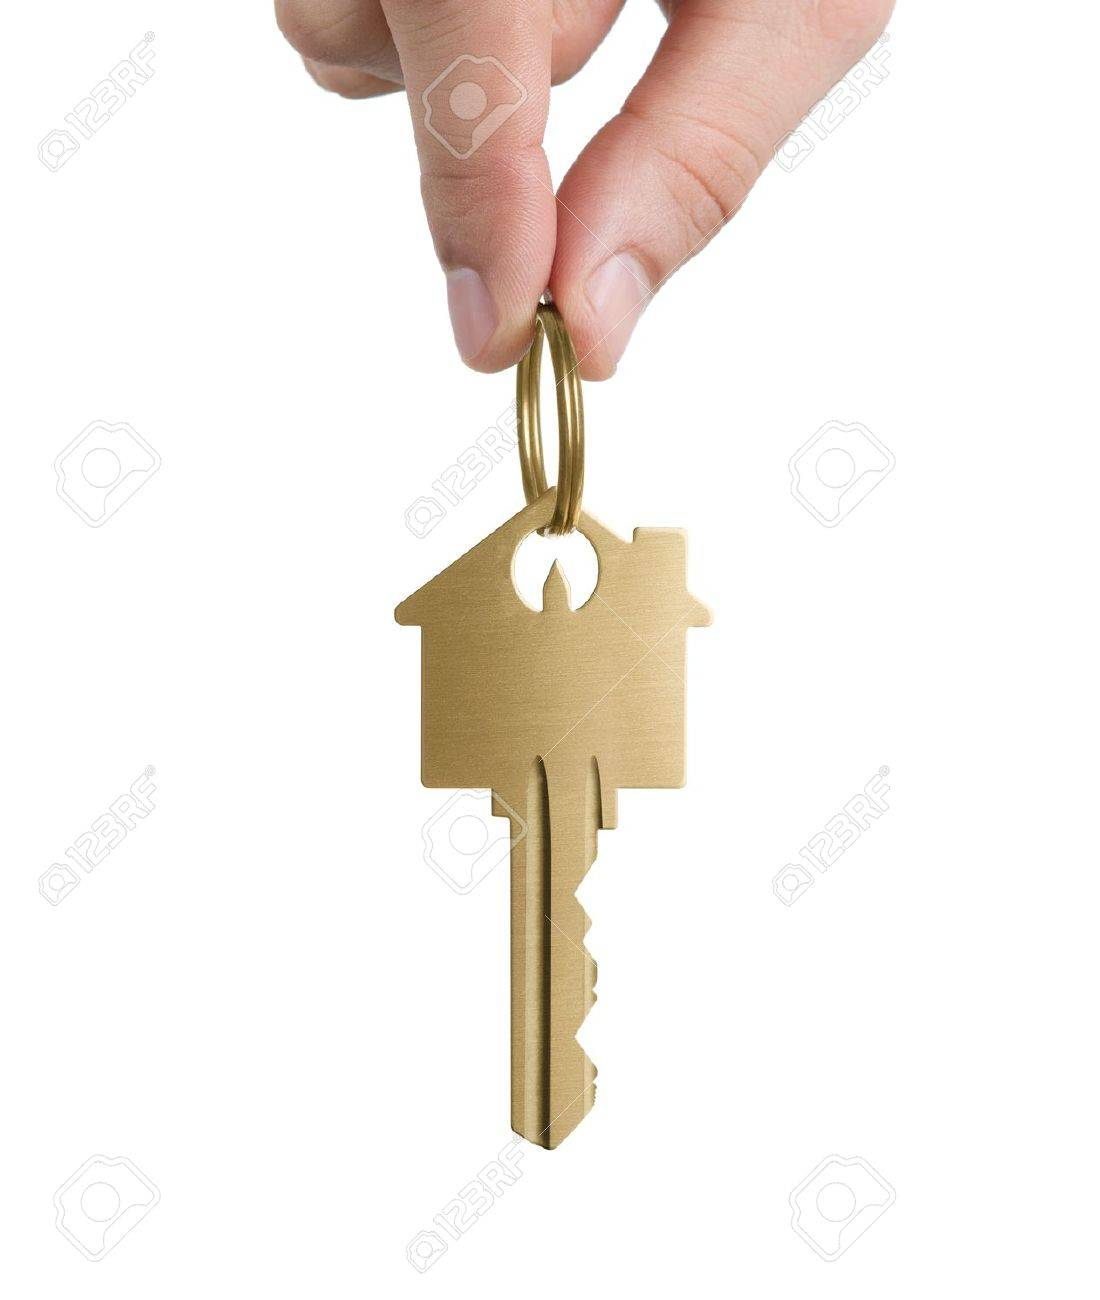 house key. human hand holding key to a dream house isolated on white background stock photo 12538614